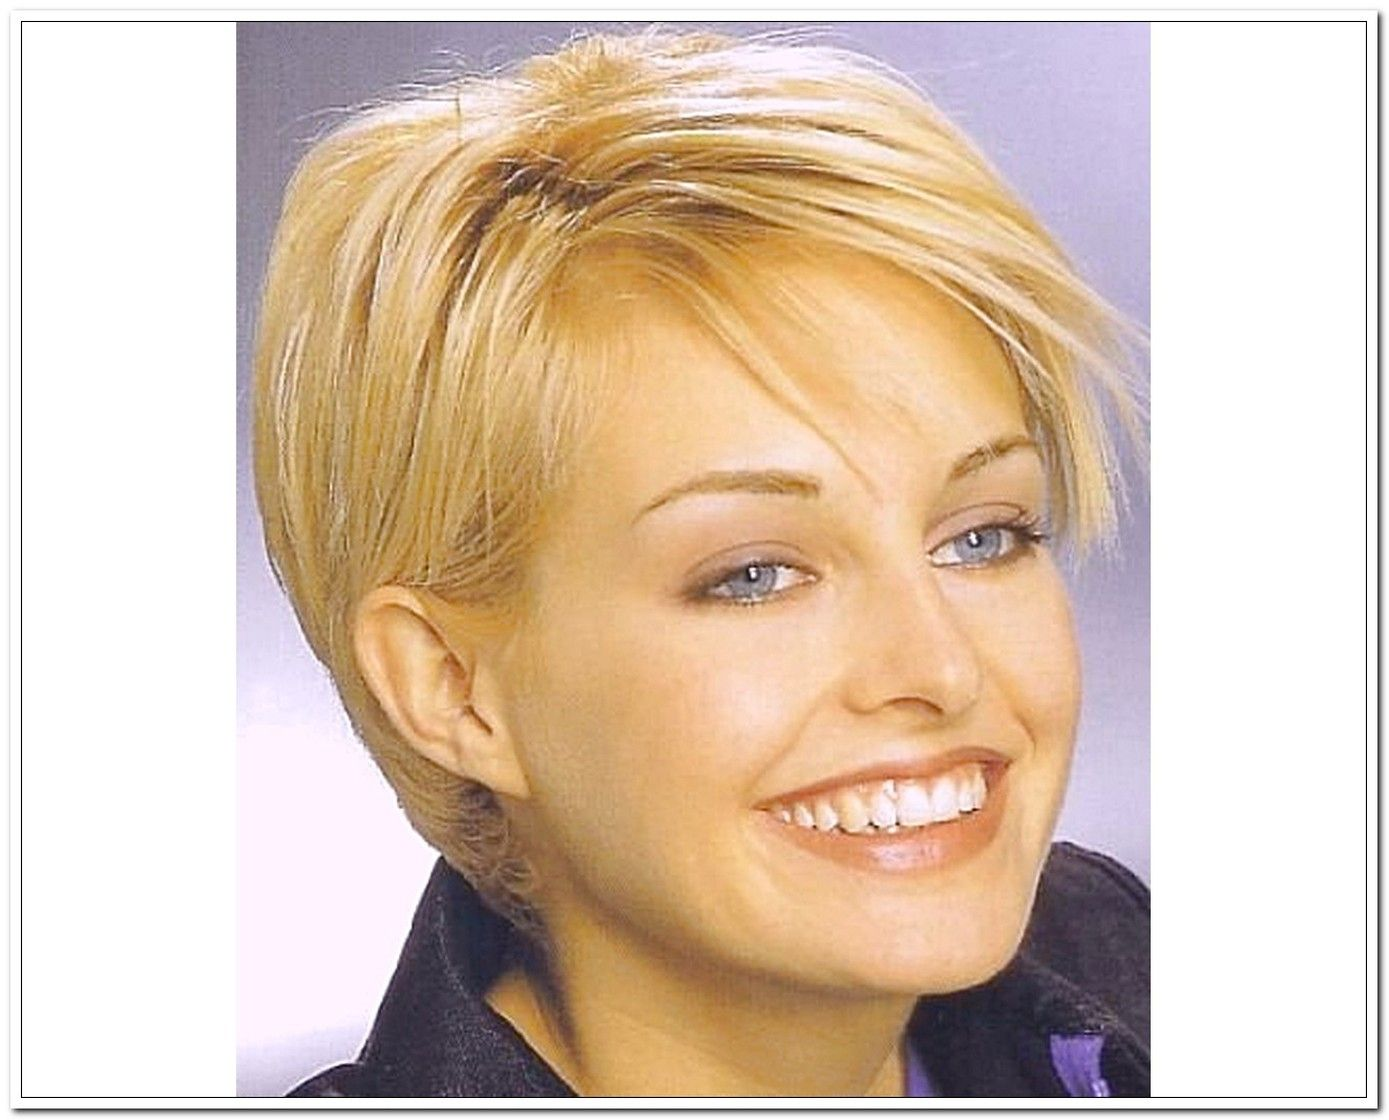 Easy hairstyles for round face shapes - Short Hairstyles For Round Faces 2016 Google Search